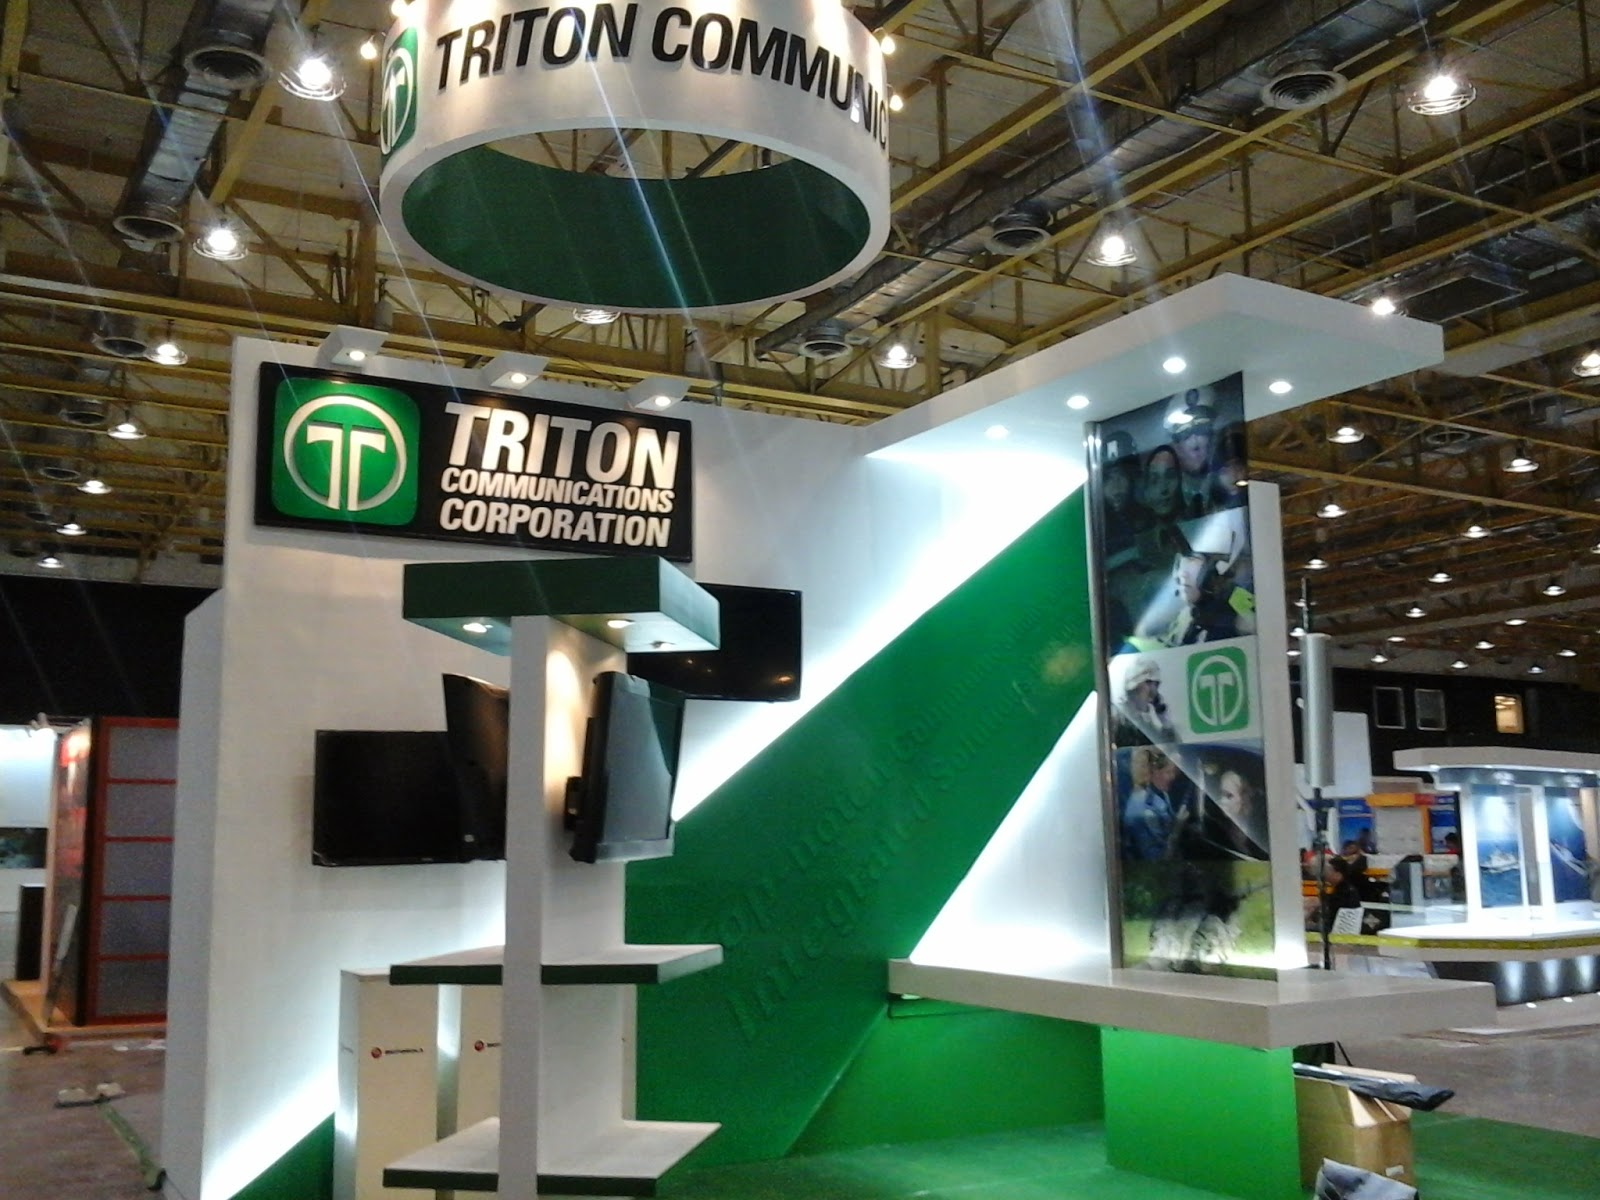 Triton Communications Corporation Trade Show Booth